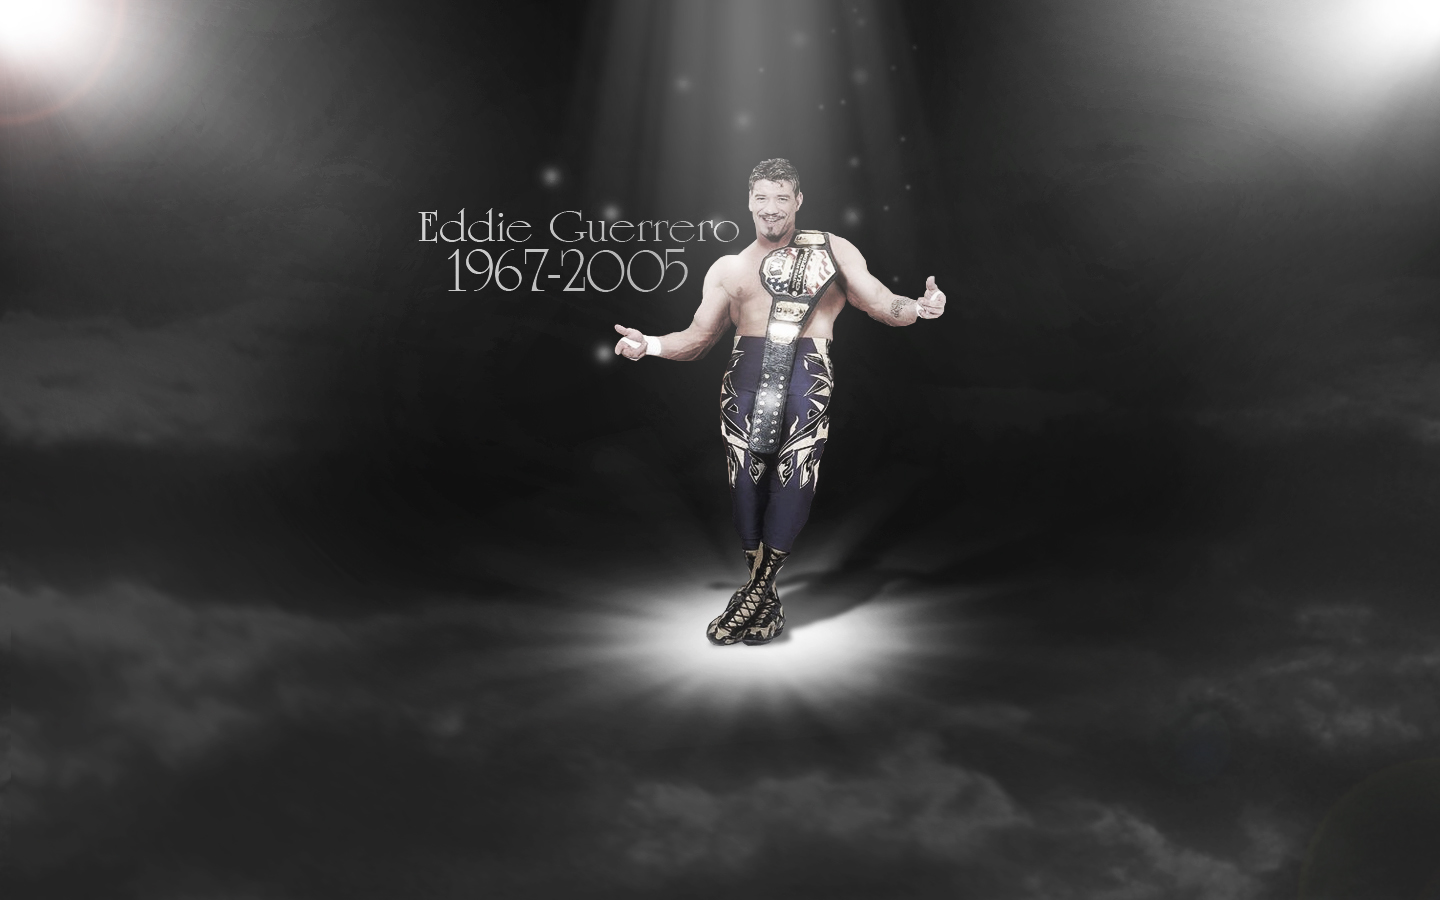 eddie guerrero wallpaper - photo #16